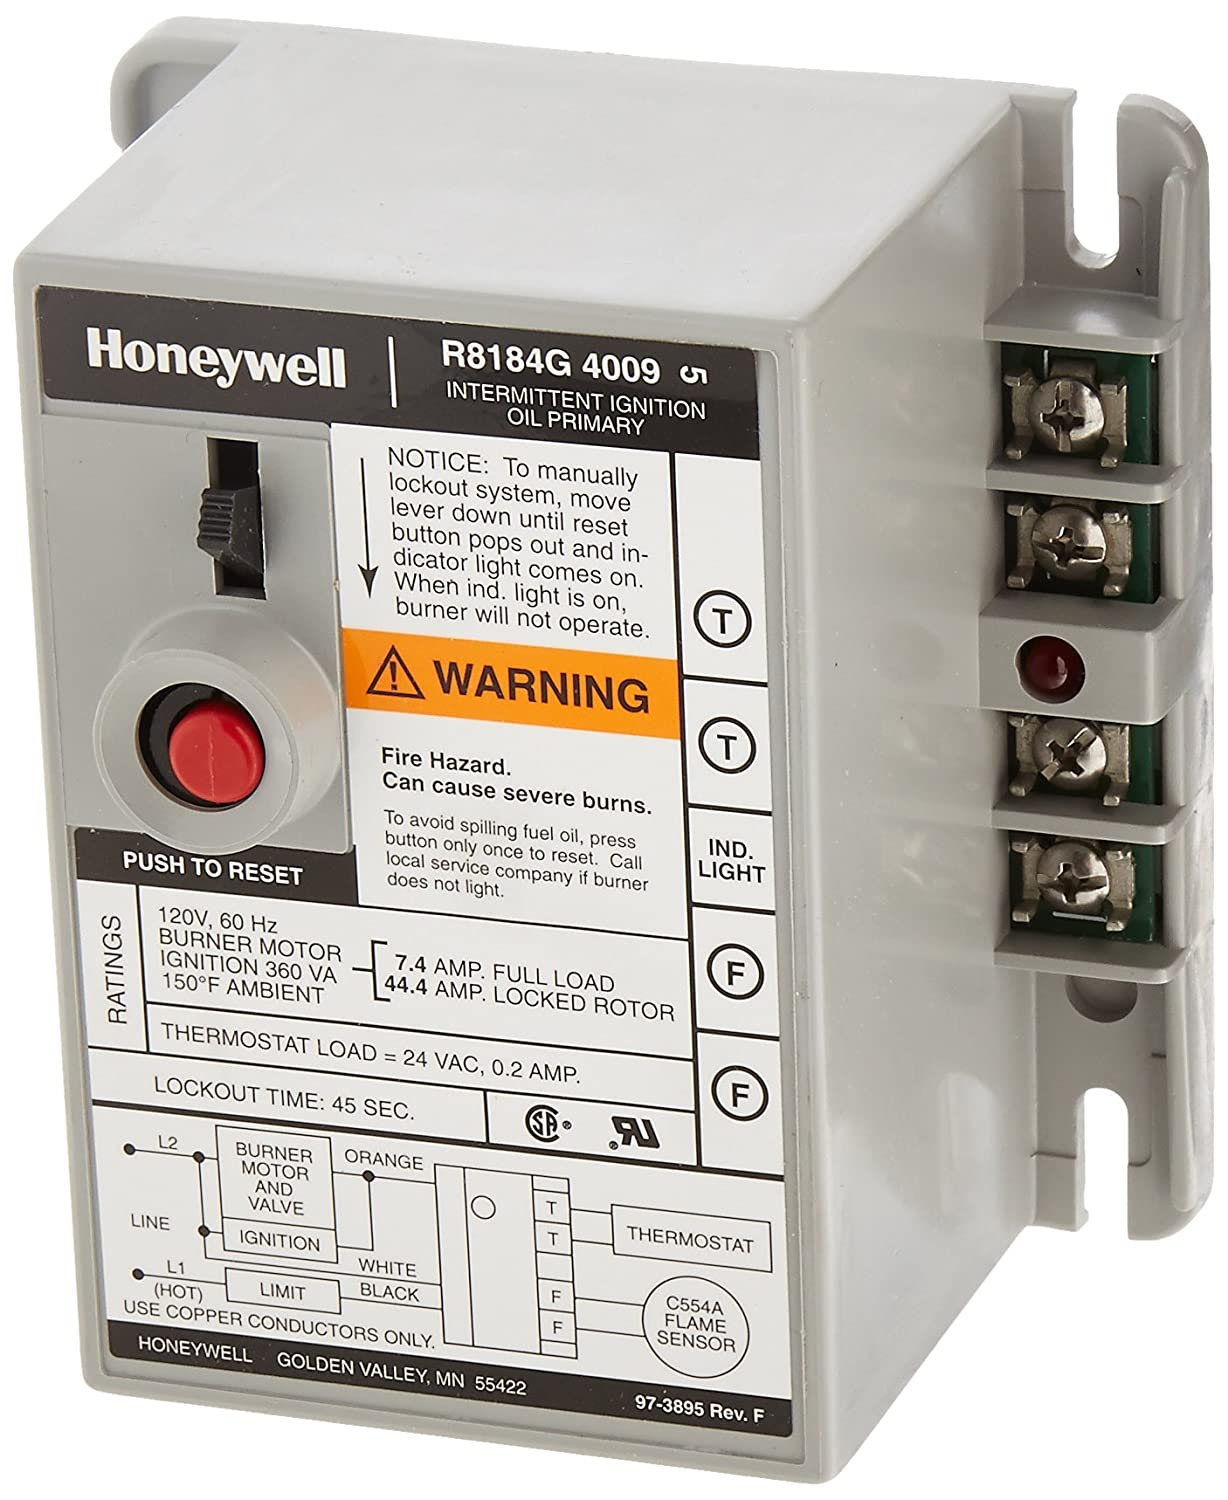 81K7eODy3LL._SL1500_ honeywell r8184g4009 international oil burner control household honeywell r8184m 1002 wiring diagram at gsmx.co